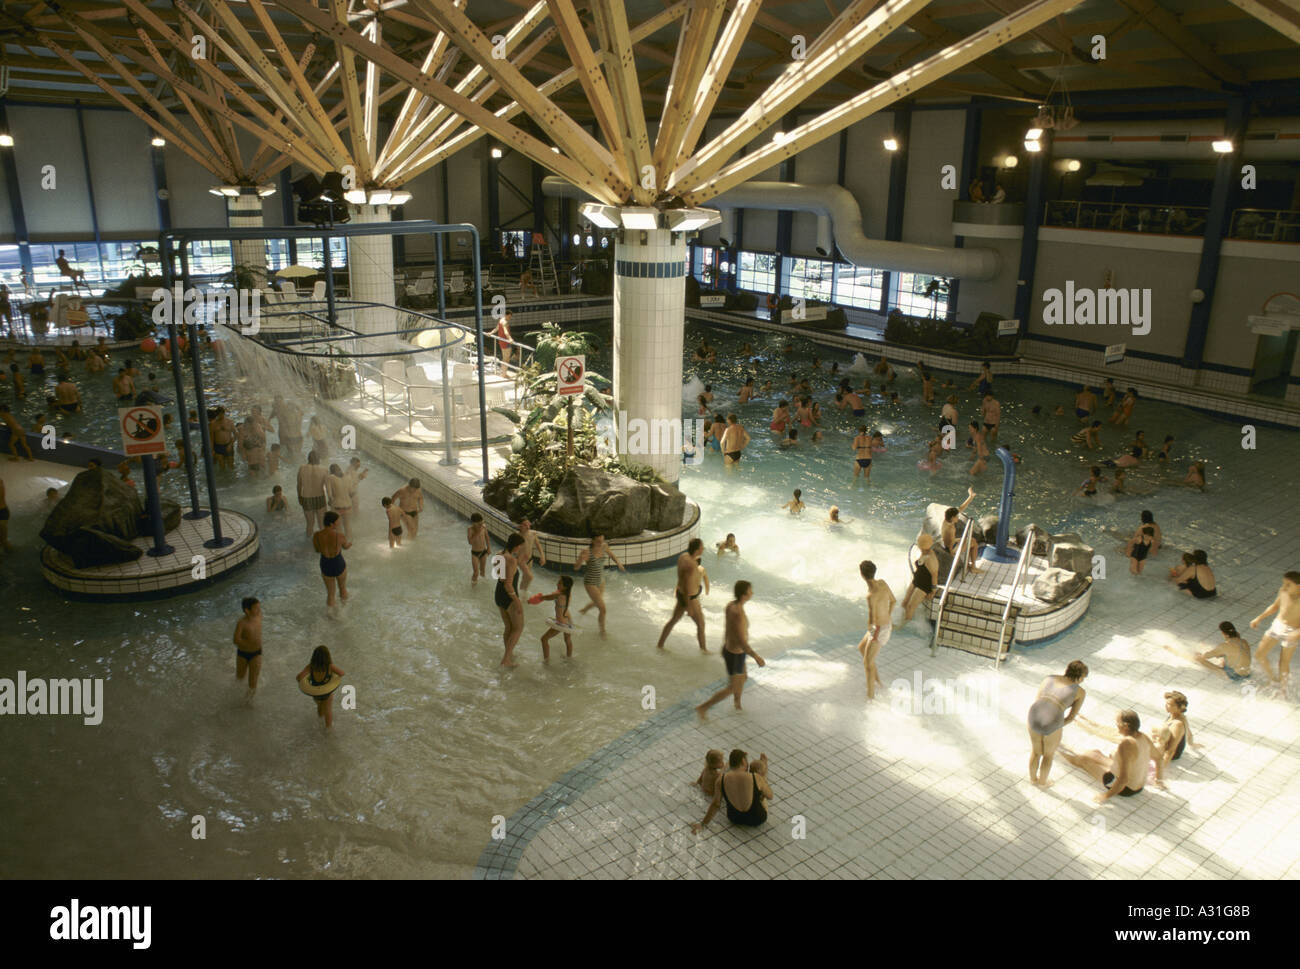 Holidaymakers In Indoor Swimming Pool At Butlins Holiday Camp Stock Photo Royalty Free Image